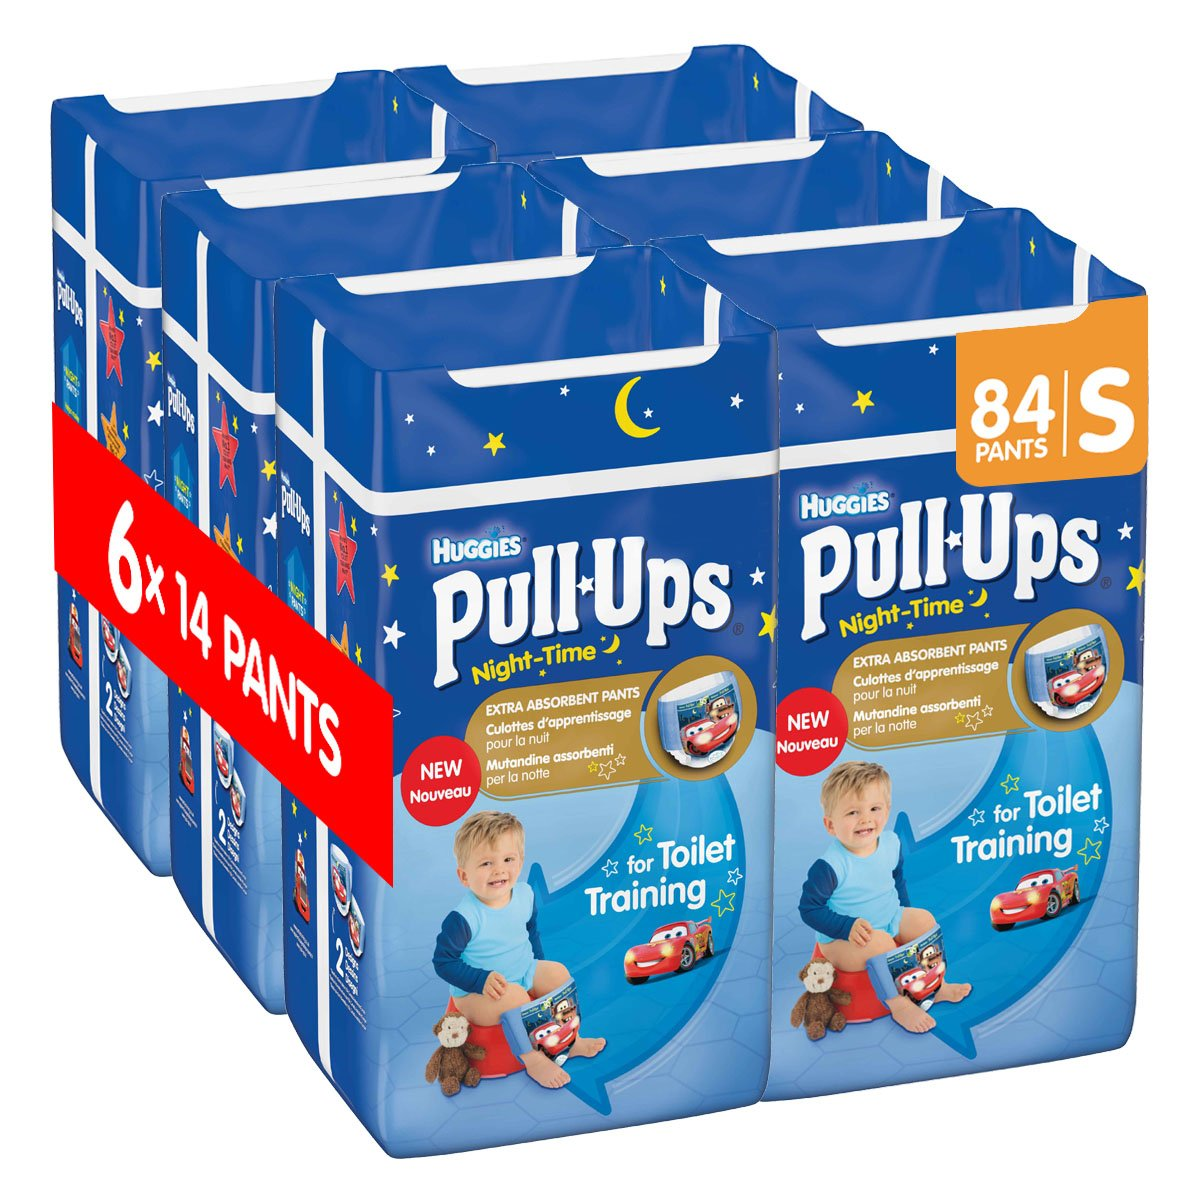 Huggies Pull Ups Night Time Potty Training Pants For Boys Large 60 Pants Total Amazon Co Uk Health Personal Care